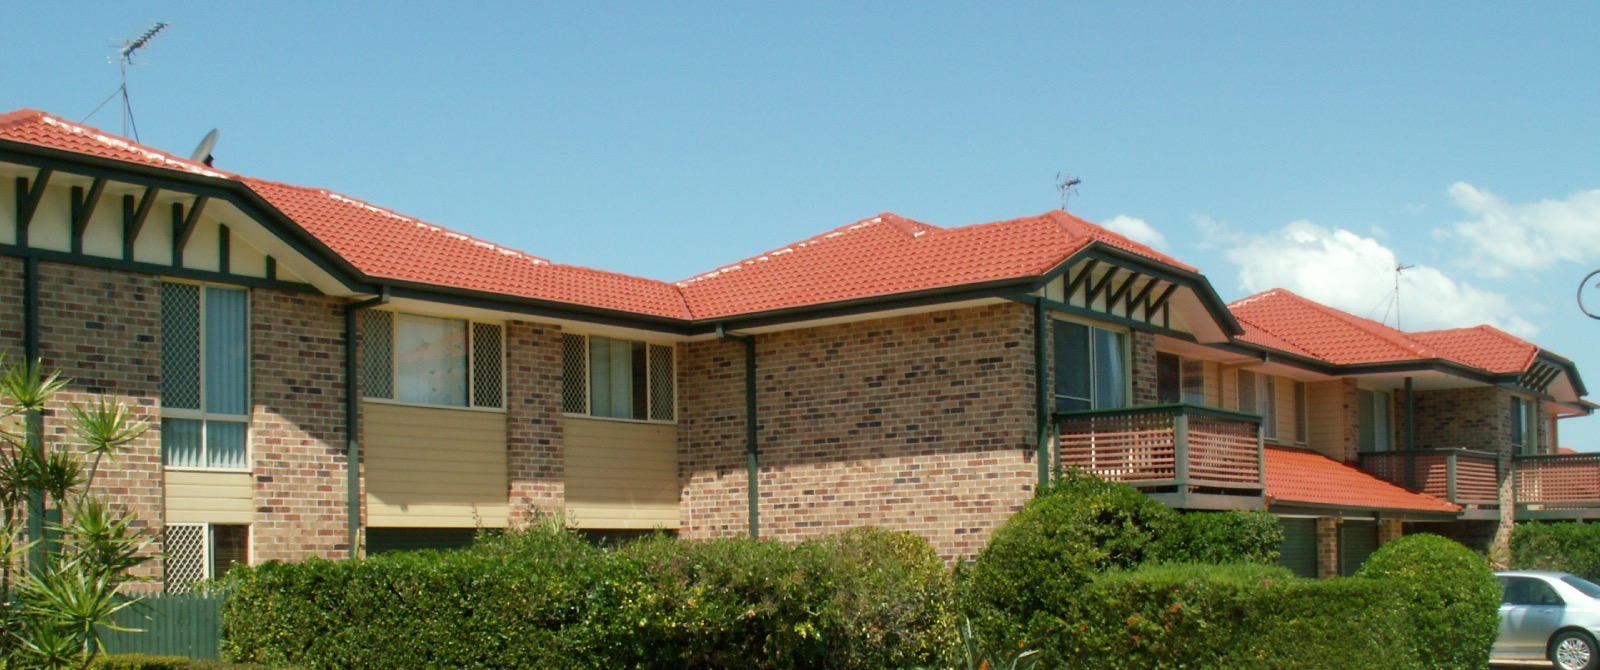 Roofing Restorations image 15